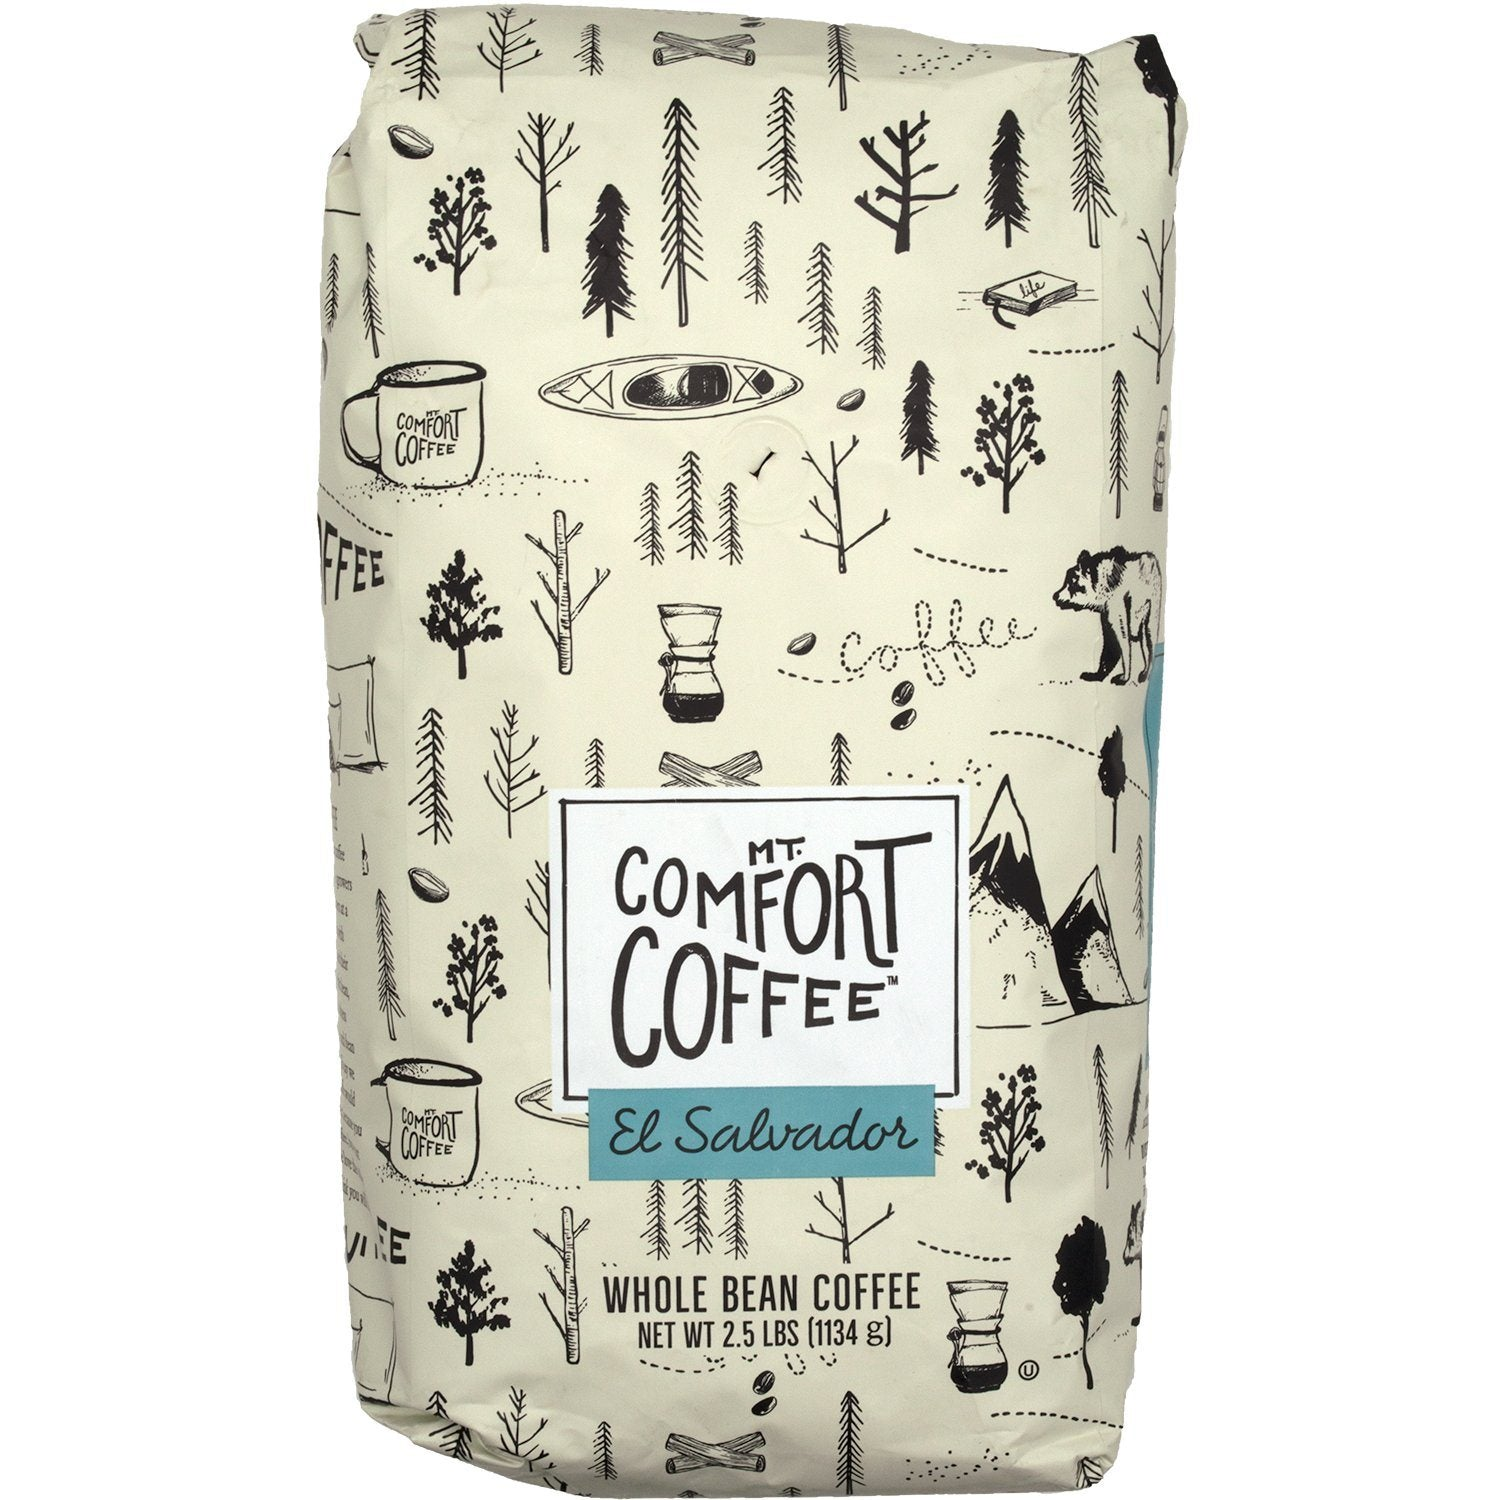 Mt. Comfort Coffee Whole Bean Coffee Mt. Comfort Coffee El Salvador Medium Roast 2.5 Pound